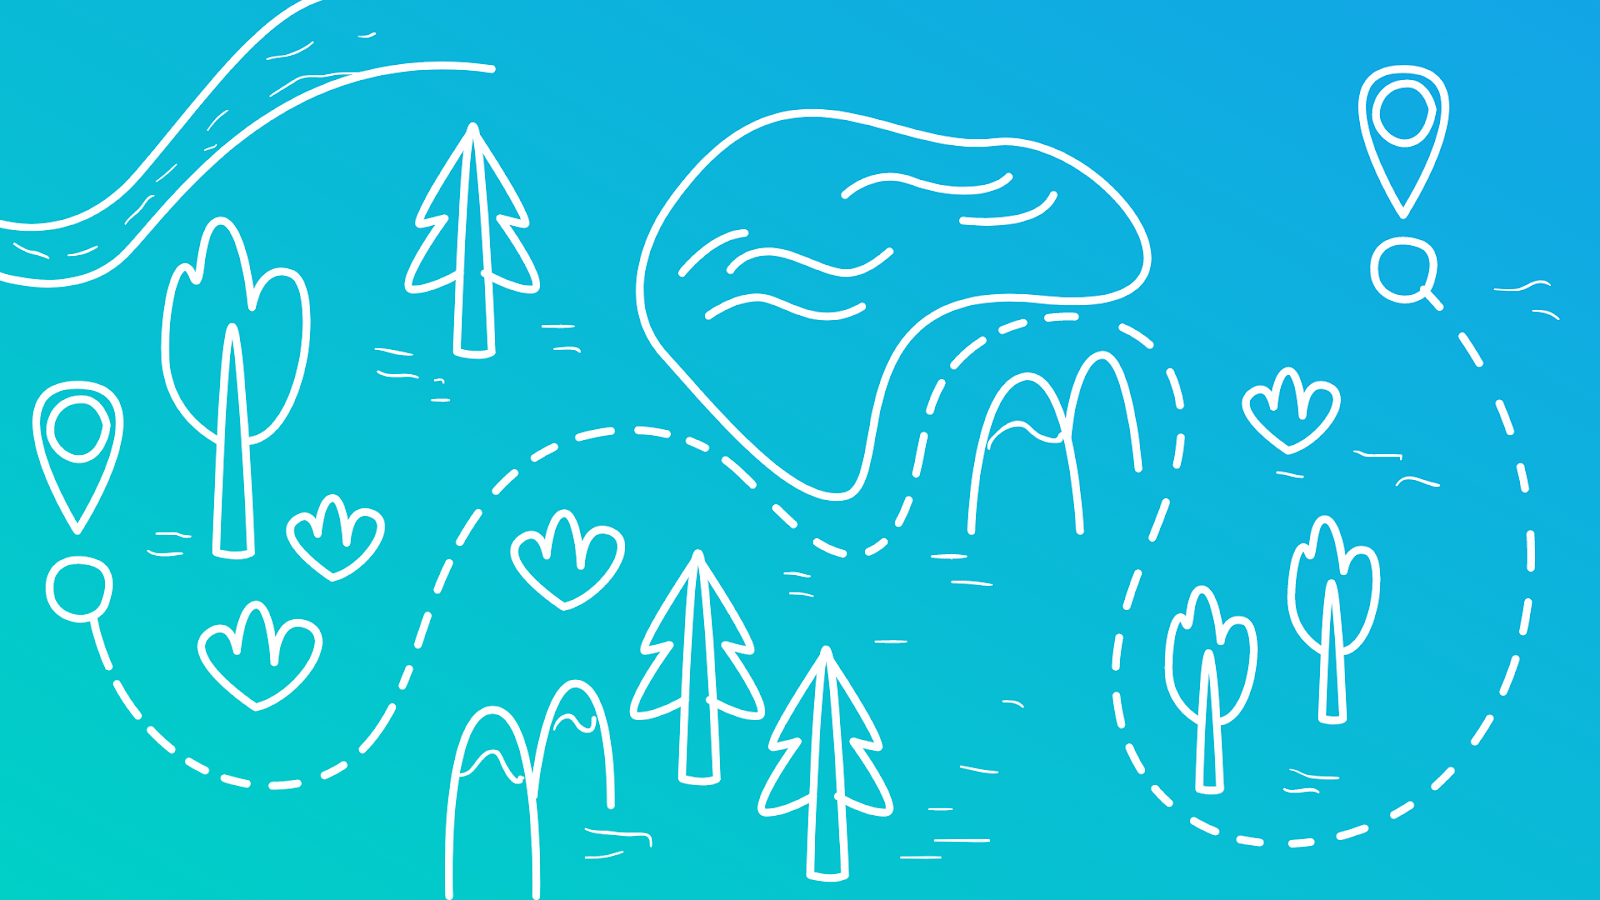 an illustrated picture of a map winding through a forest and lake